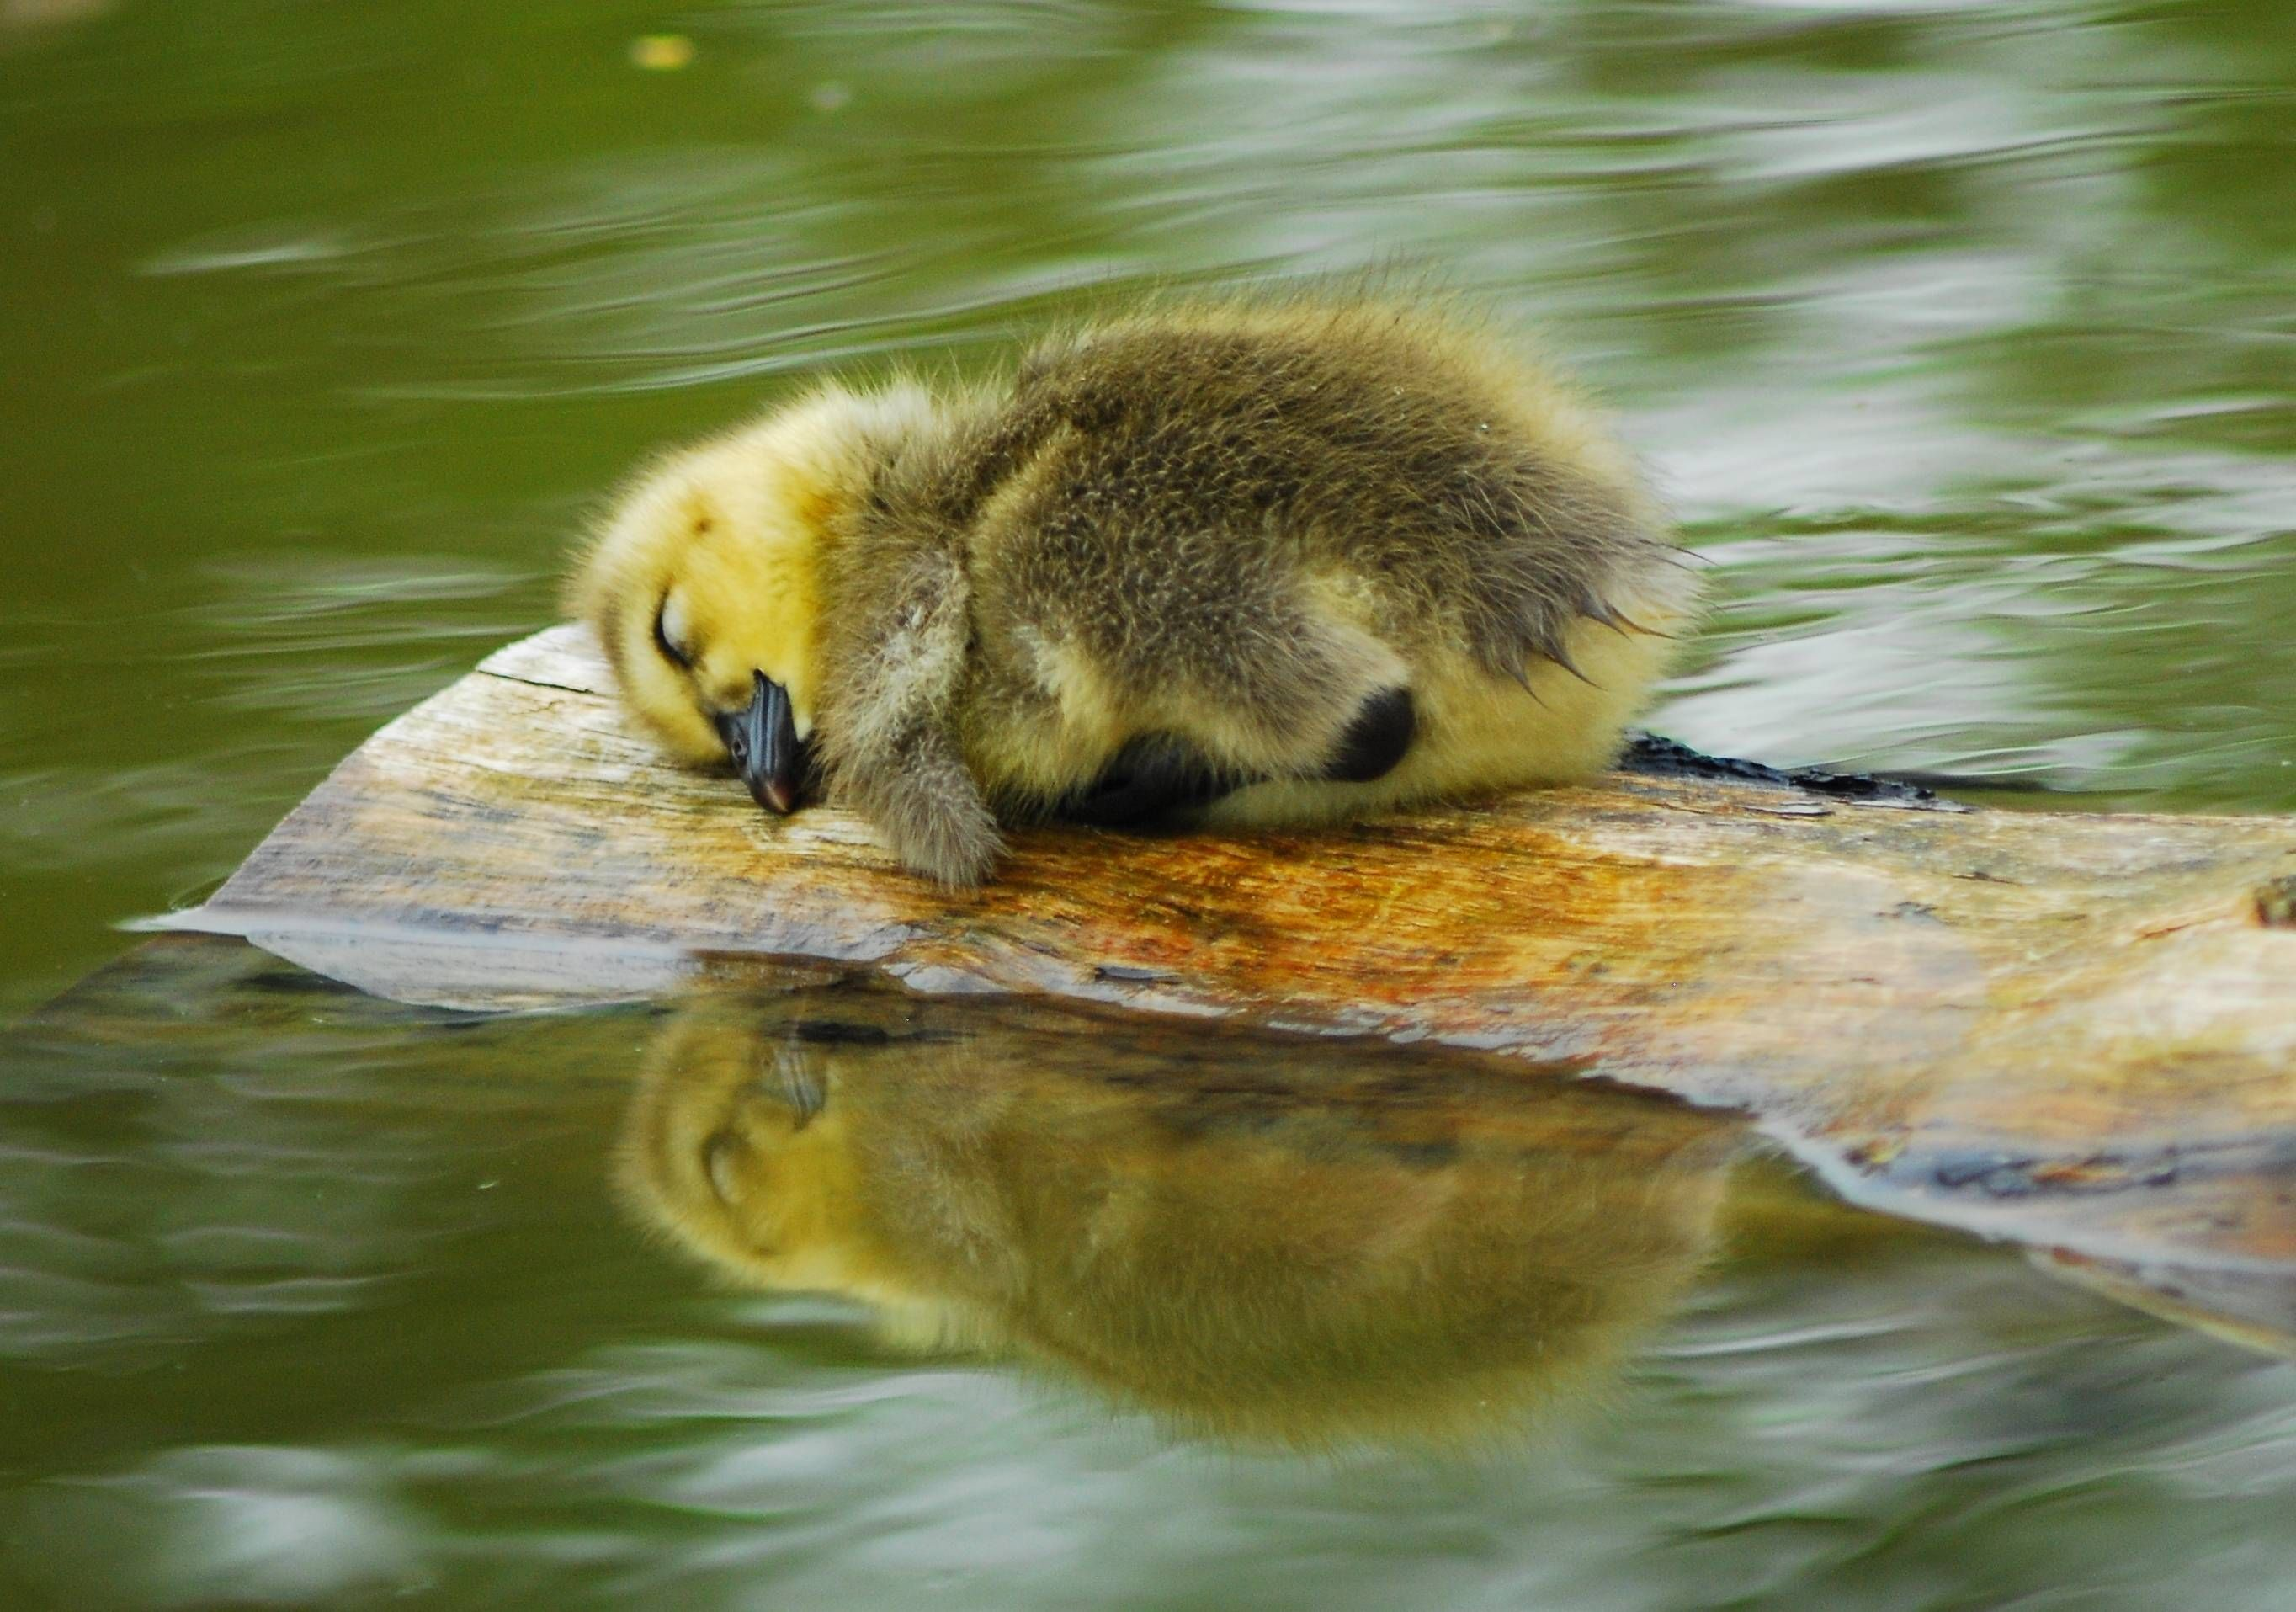 Cute little duck - photo#42